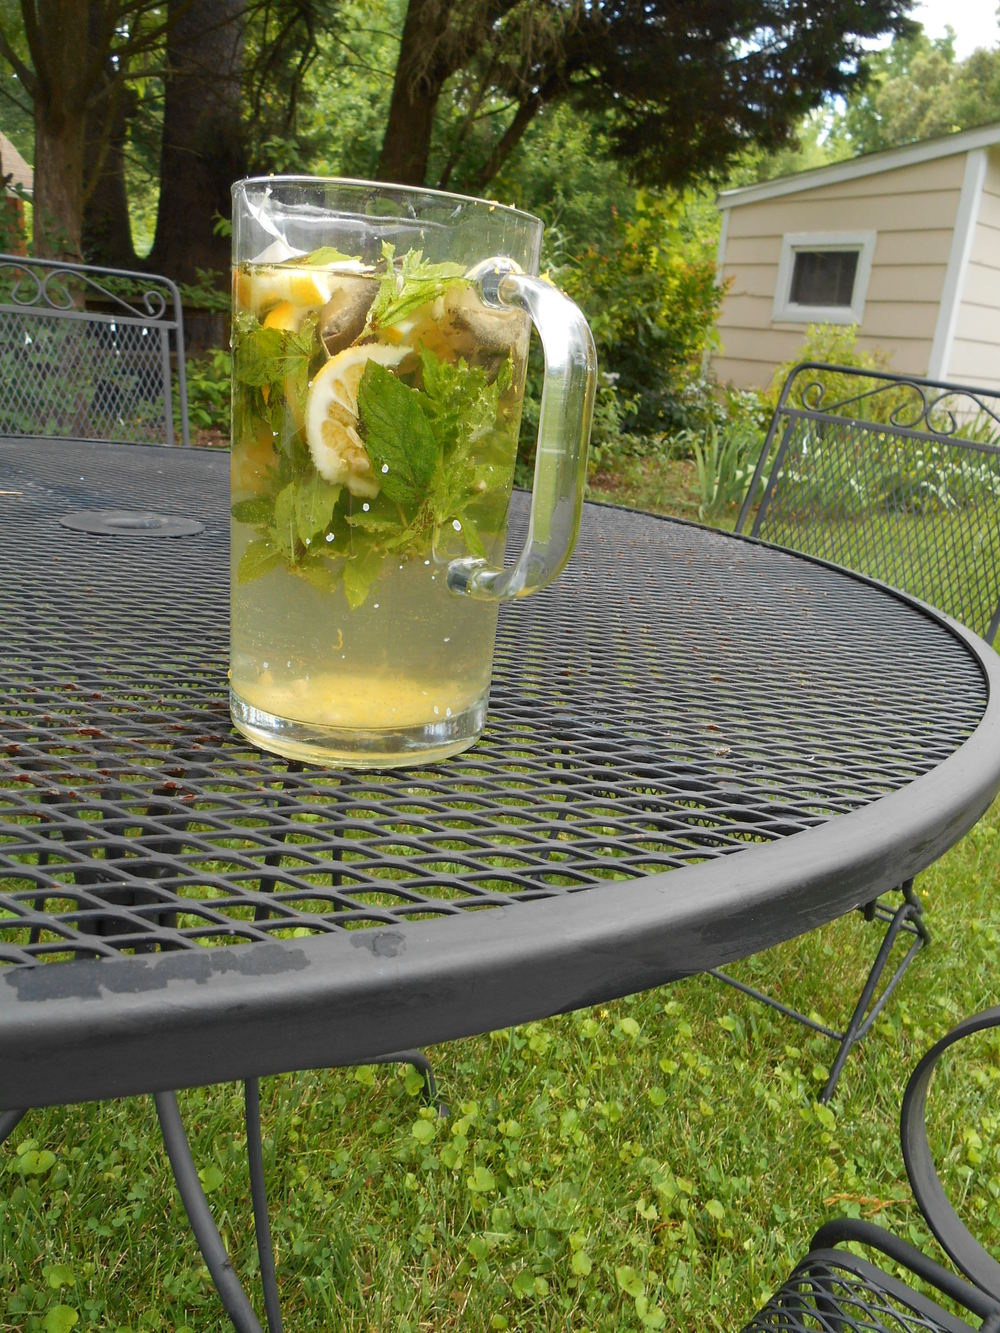 What a difference cool air in July makes here in Maryland!  Rowing out to Lark, for a while on board in the early morning, then weeding the asparagus bed, then concocting some sun tea ... green tea with jasmine, handful of mint and juice, grated rind, and sliced up Meyer lemon brought back from the garden of a friend in California .... aaaah .... grateful!